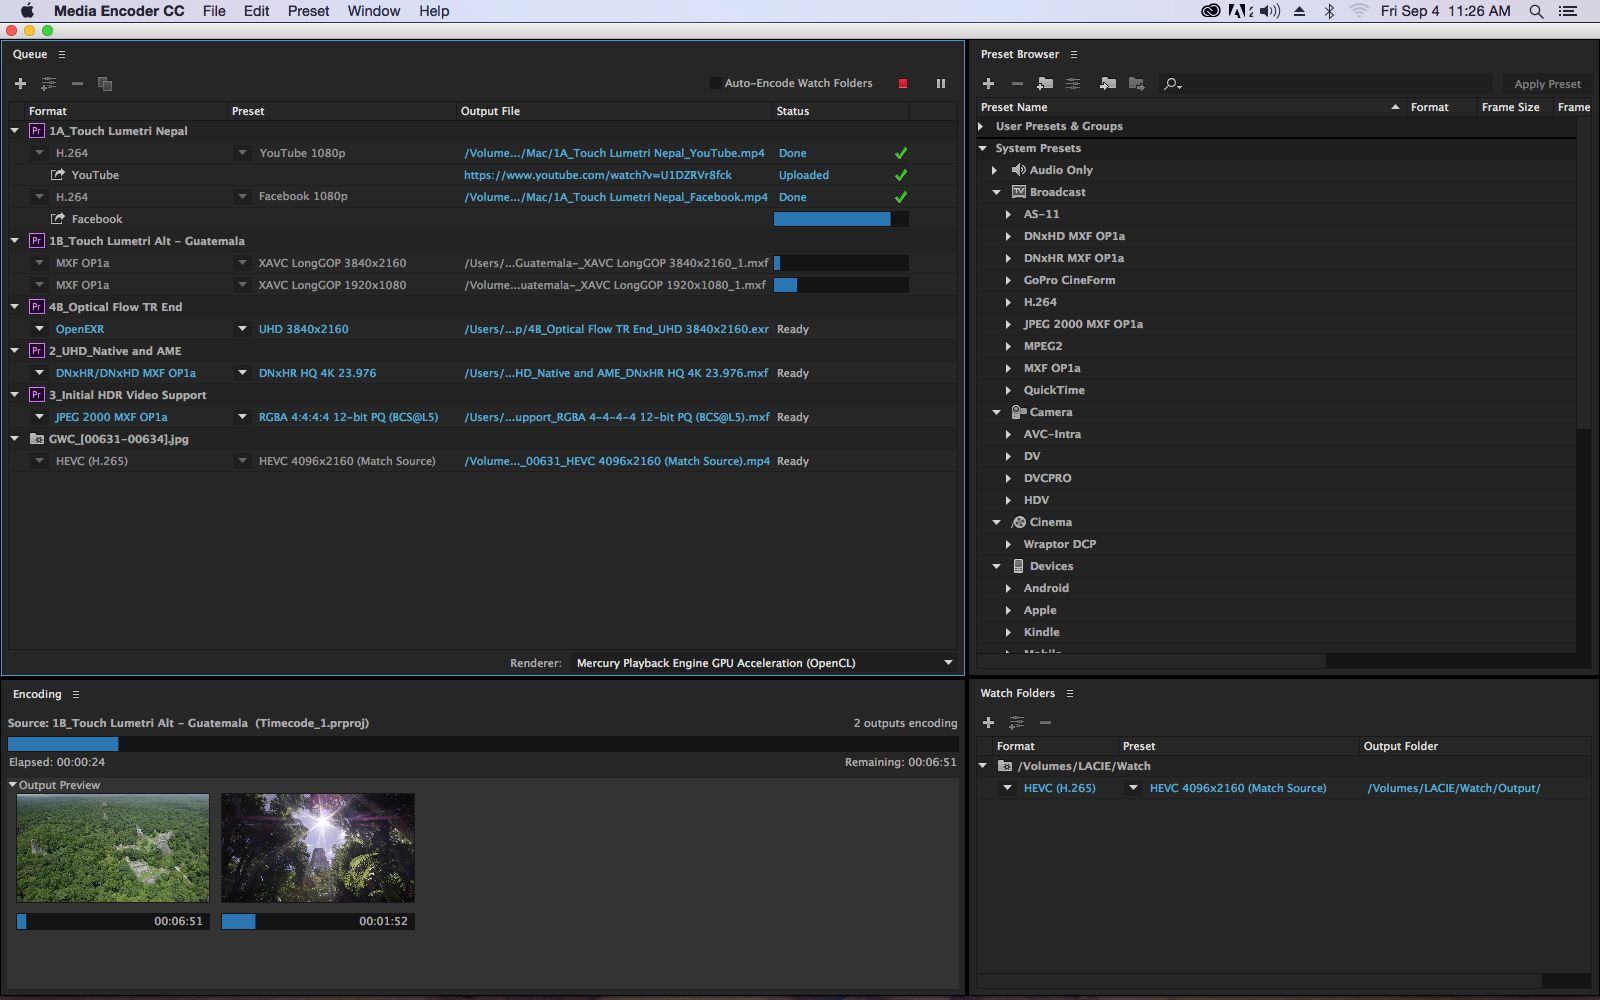 New Features Coming to Adobe Media Encoder 1